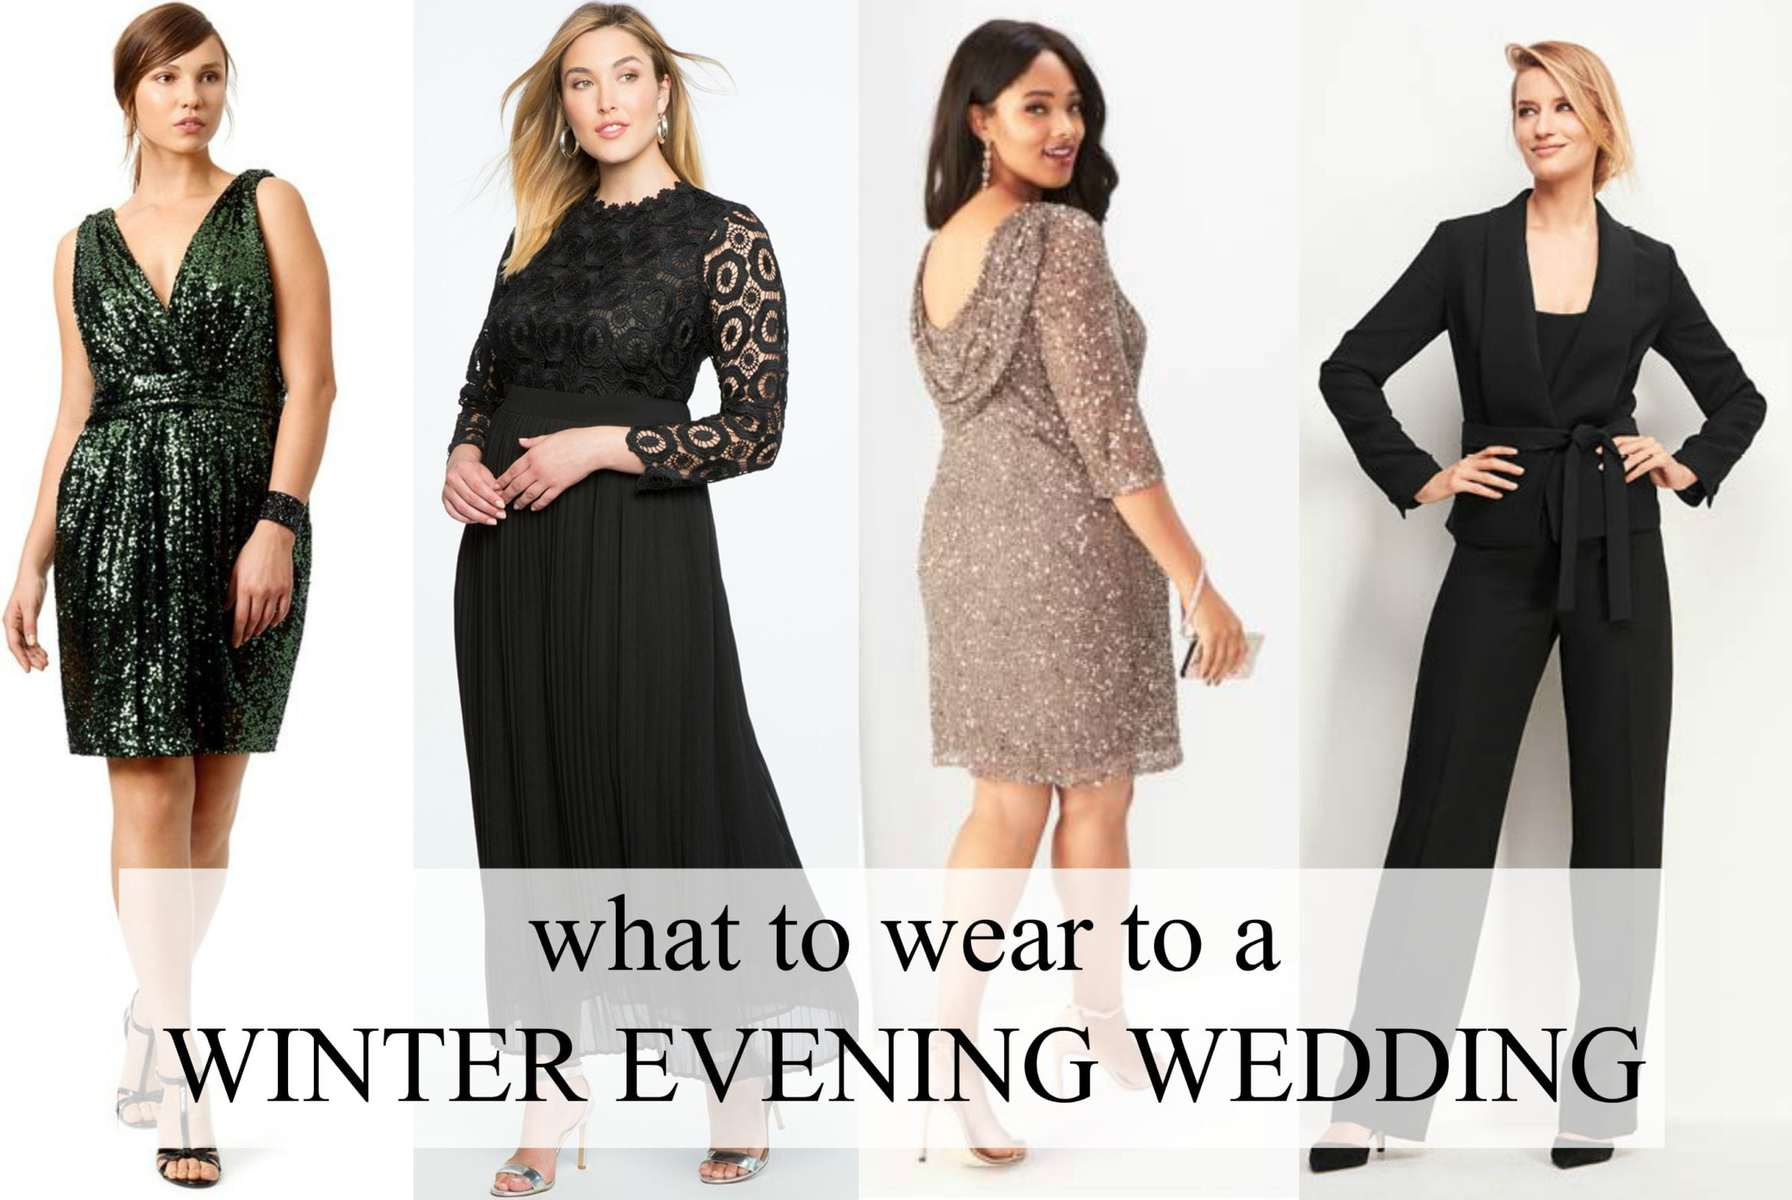 What to wear to a winter evening wedding wardrobe oxygen for Cocktail dresses to wear to a wedding